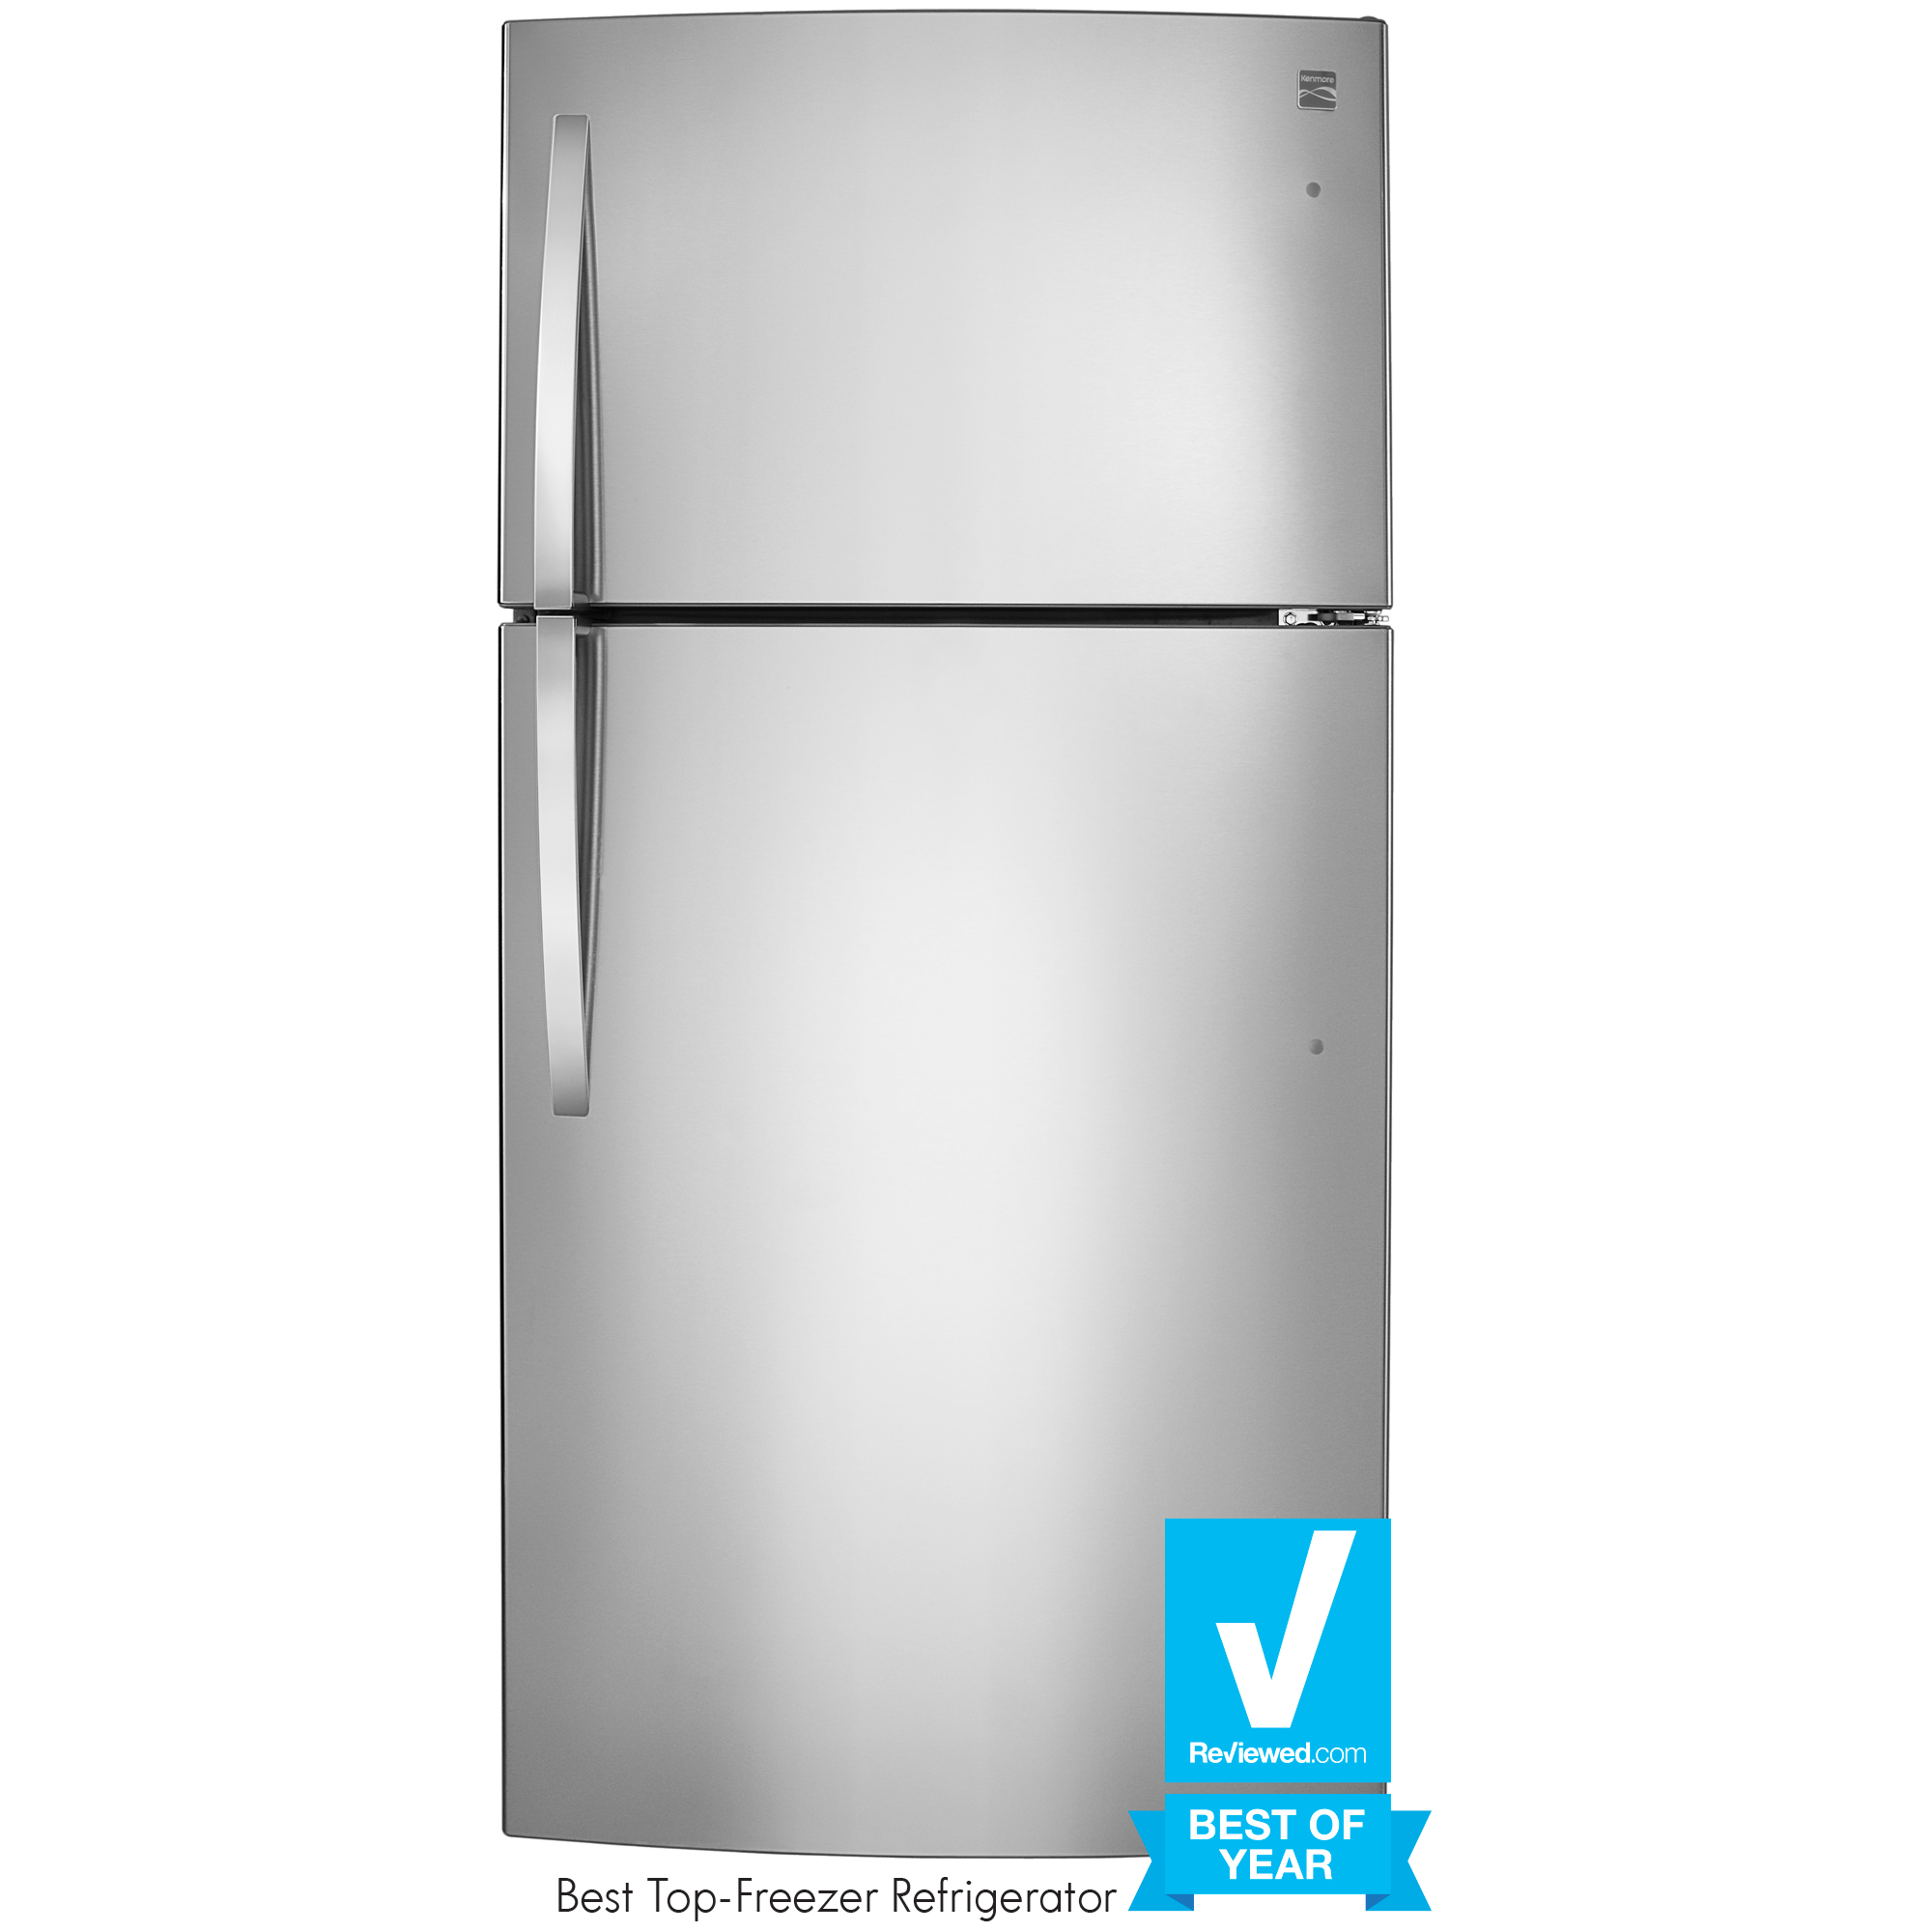 79433-23-8-cu-ft-Top-Freezer-Refrigerator-Stainless-Steel